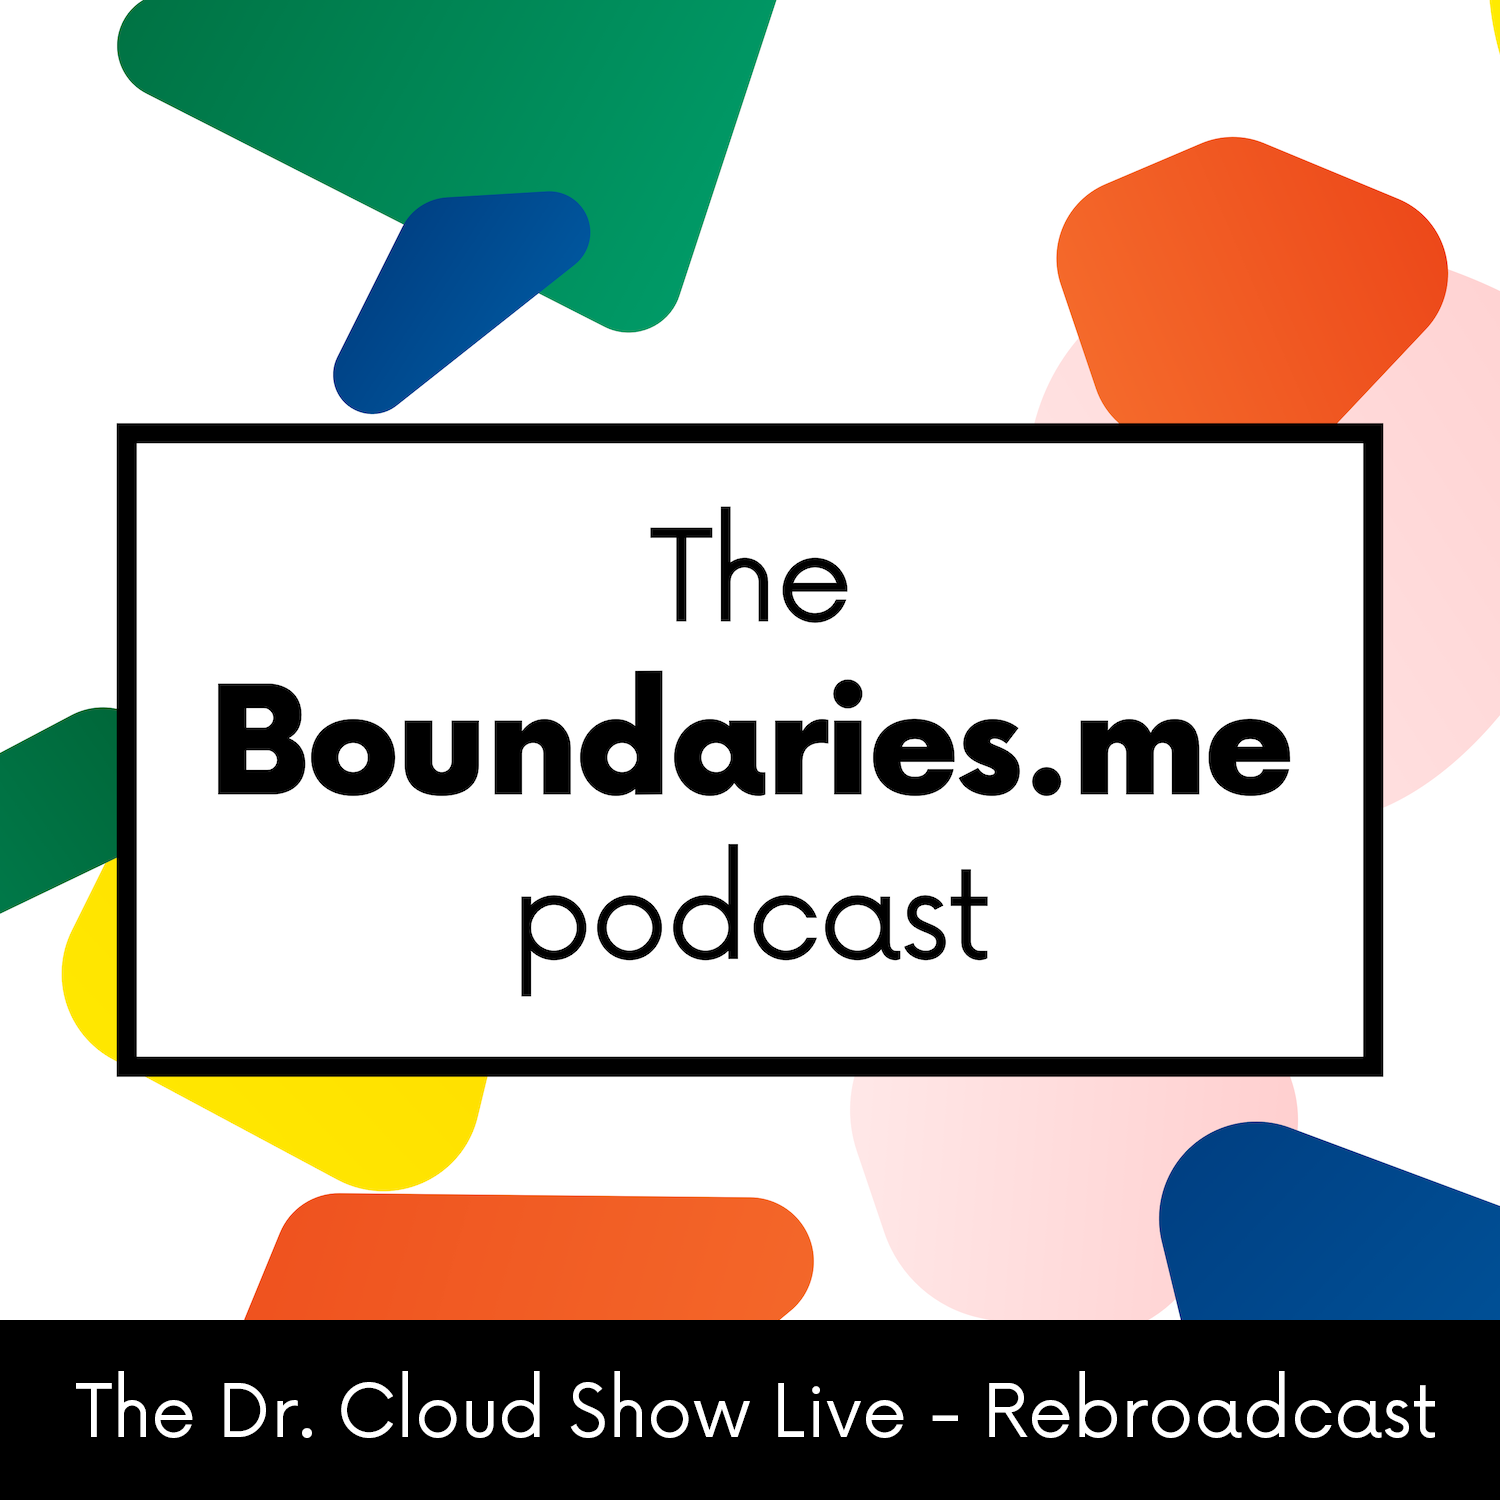 Episode 32 - The Dr. Cloud Show Live - Prioritizing, Learning, and Moving Forward